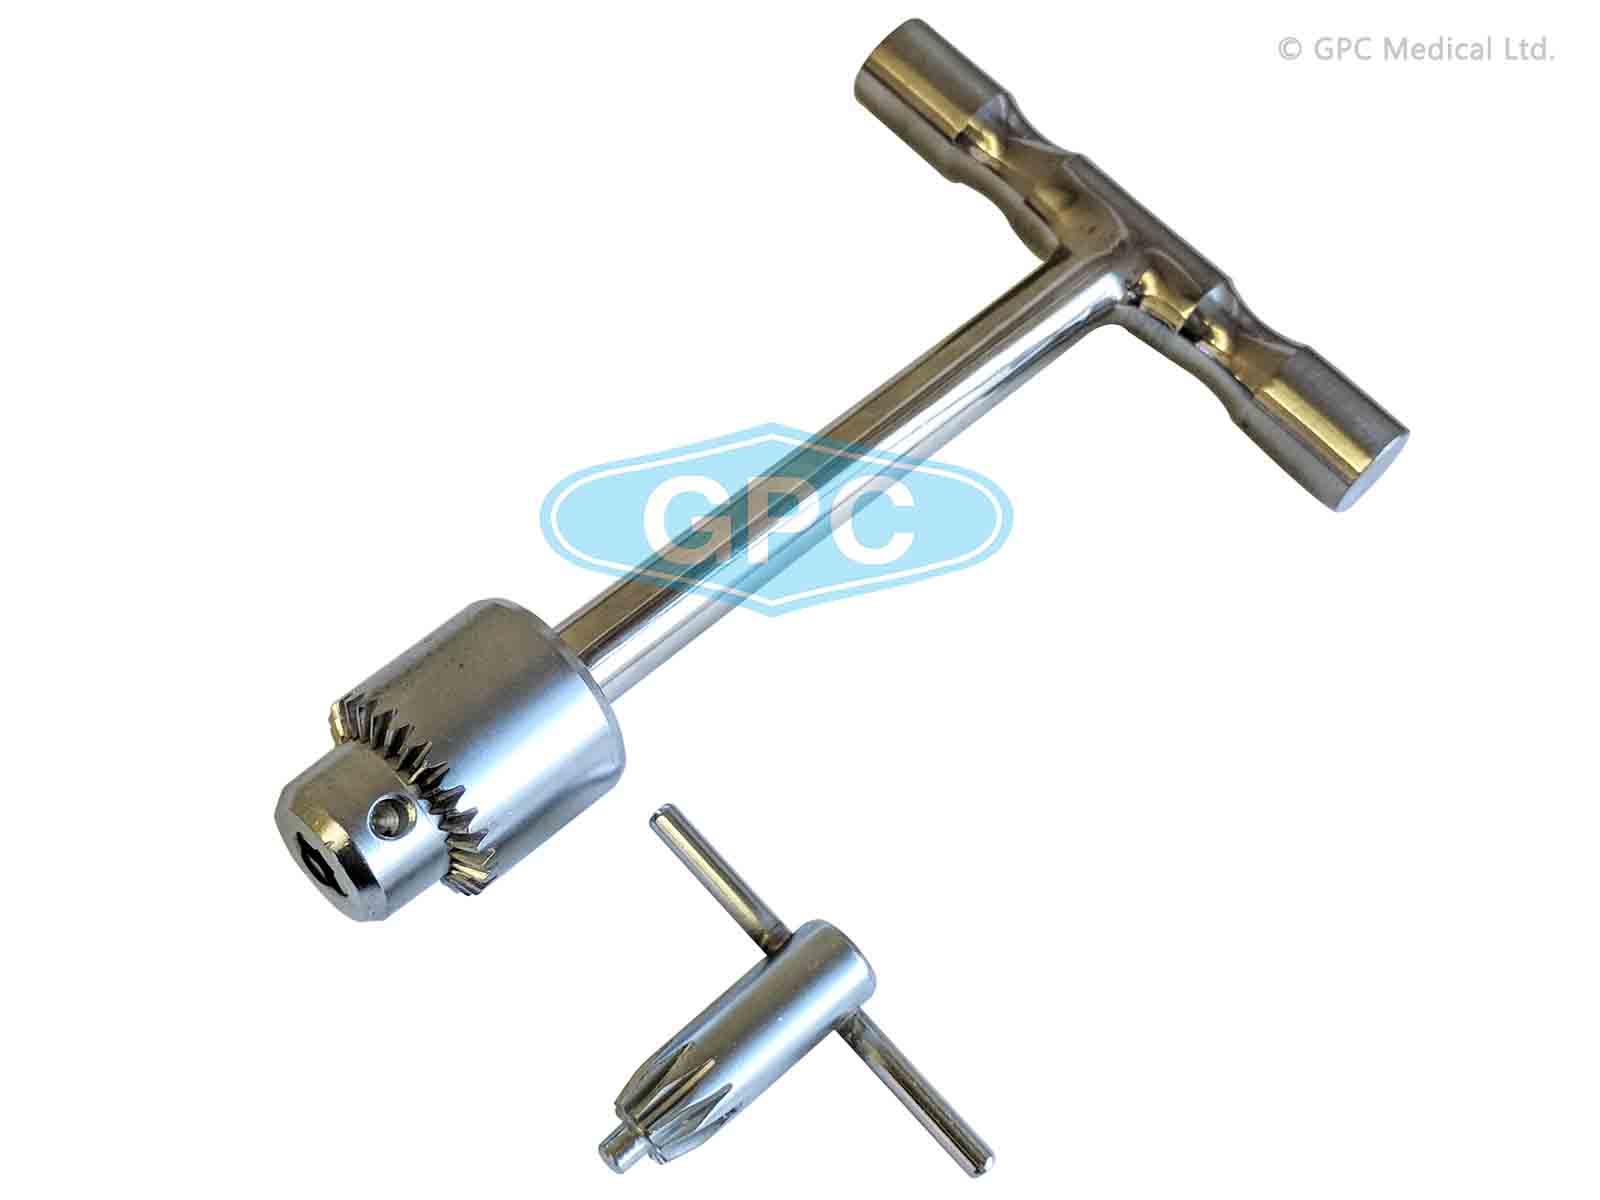 Steinmann pin introducer S.S. with S.S. Chuck & Key